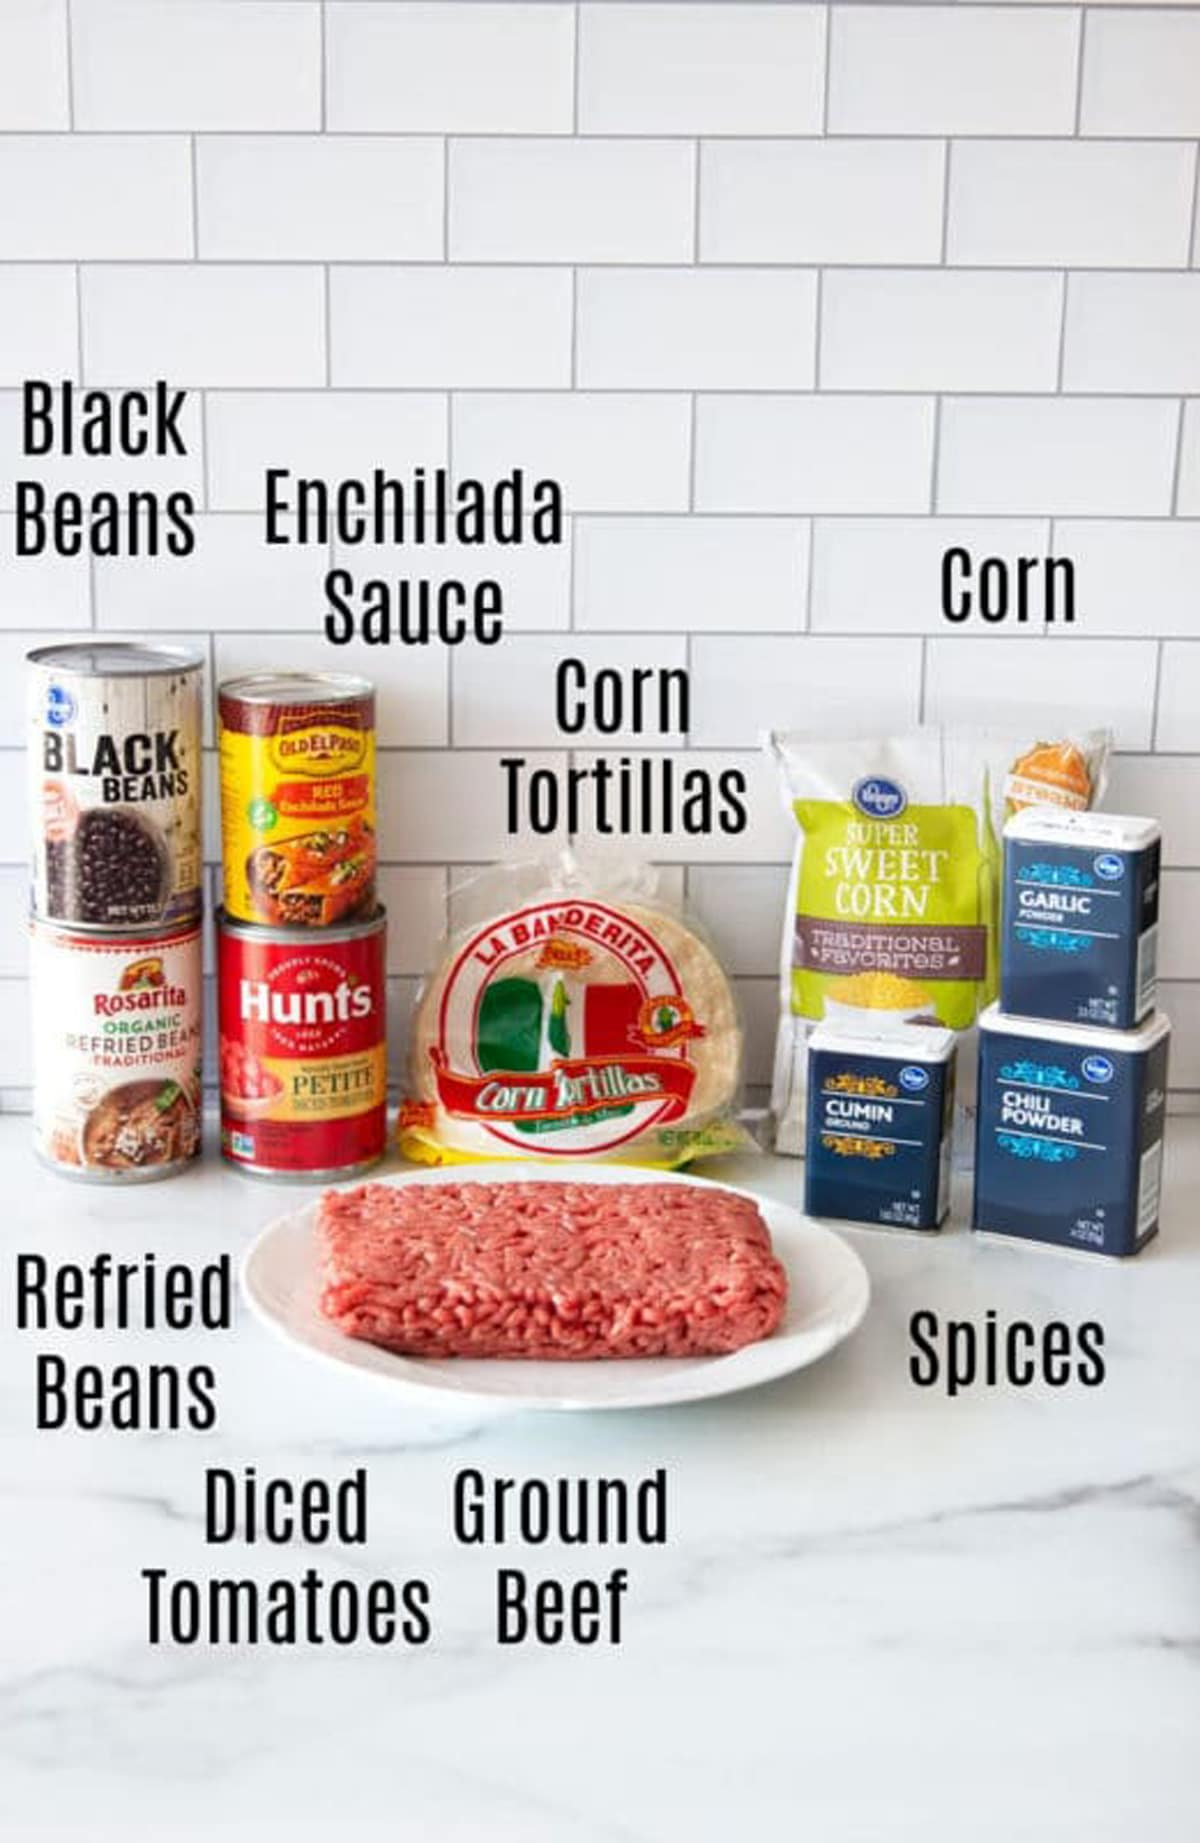 Cans of beans and corn on a counter with spices, tortilla shells, and ground beef.